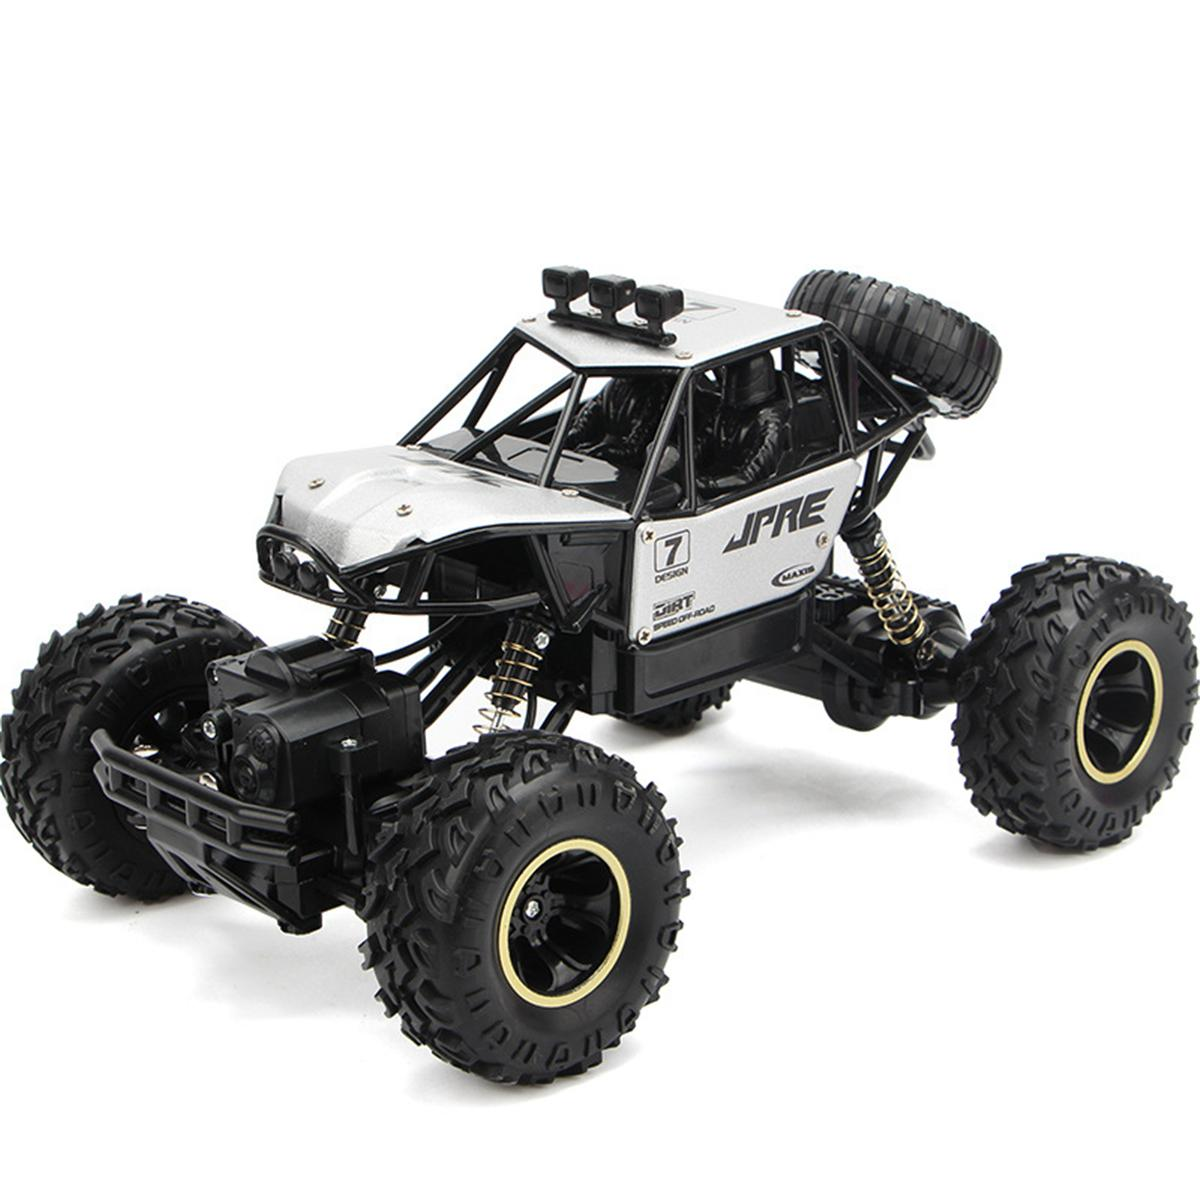 28cm 4wd Rc Truck Off Road Vehicle Crawler Car W Re Mote Con Trol Buy Sell Online Best Prices In Srilanka Daraz Lk